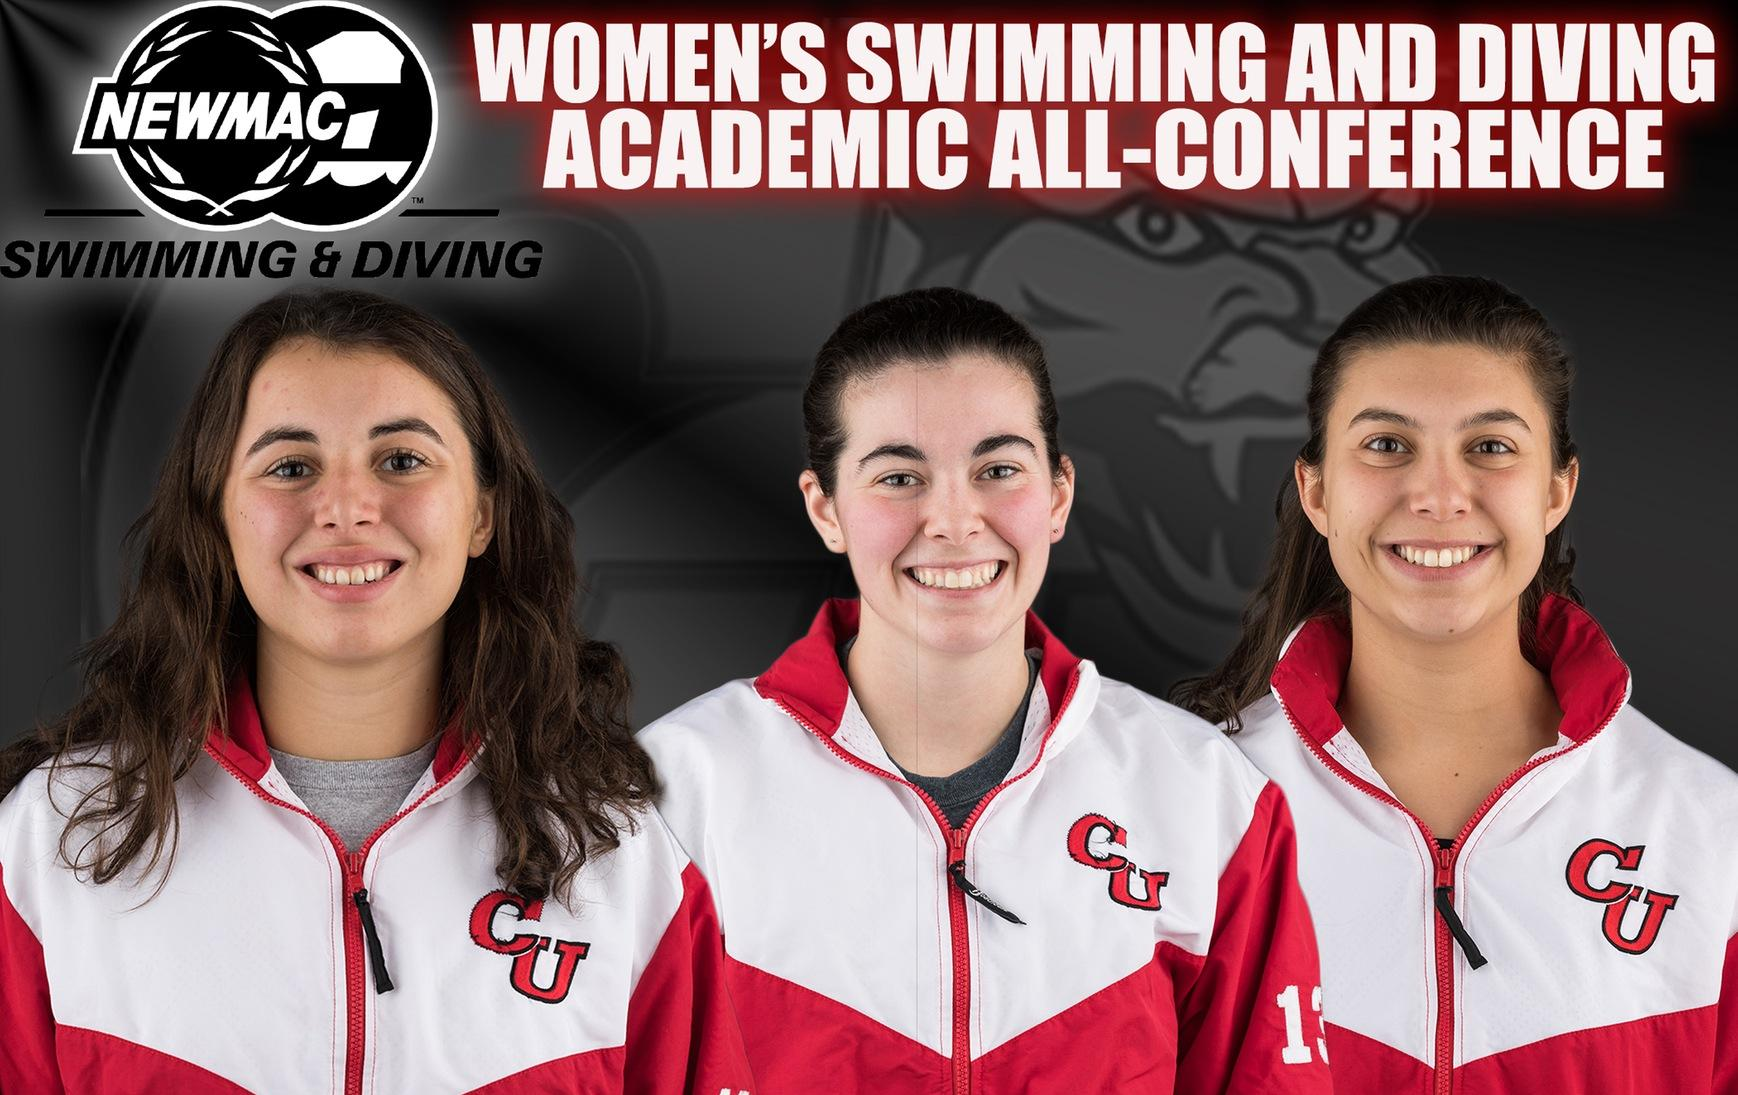 Women's Swimming and Diving Places Three on NEWMAC Academic All-Conference Team